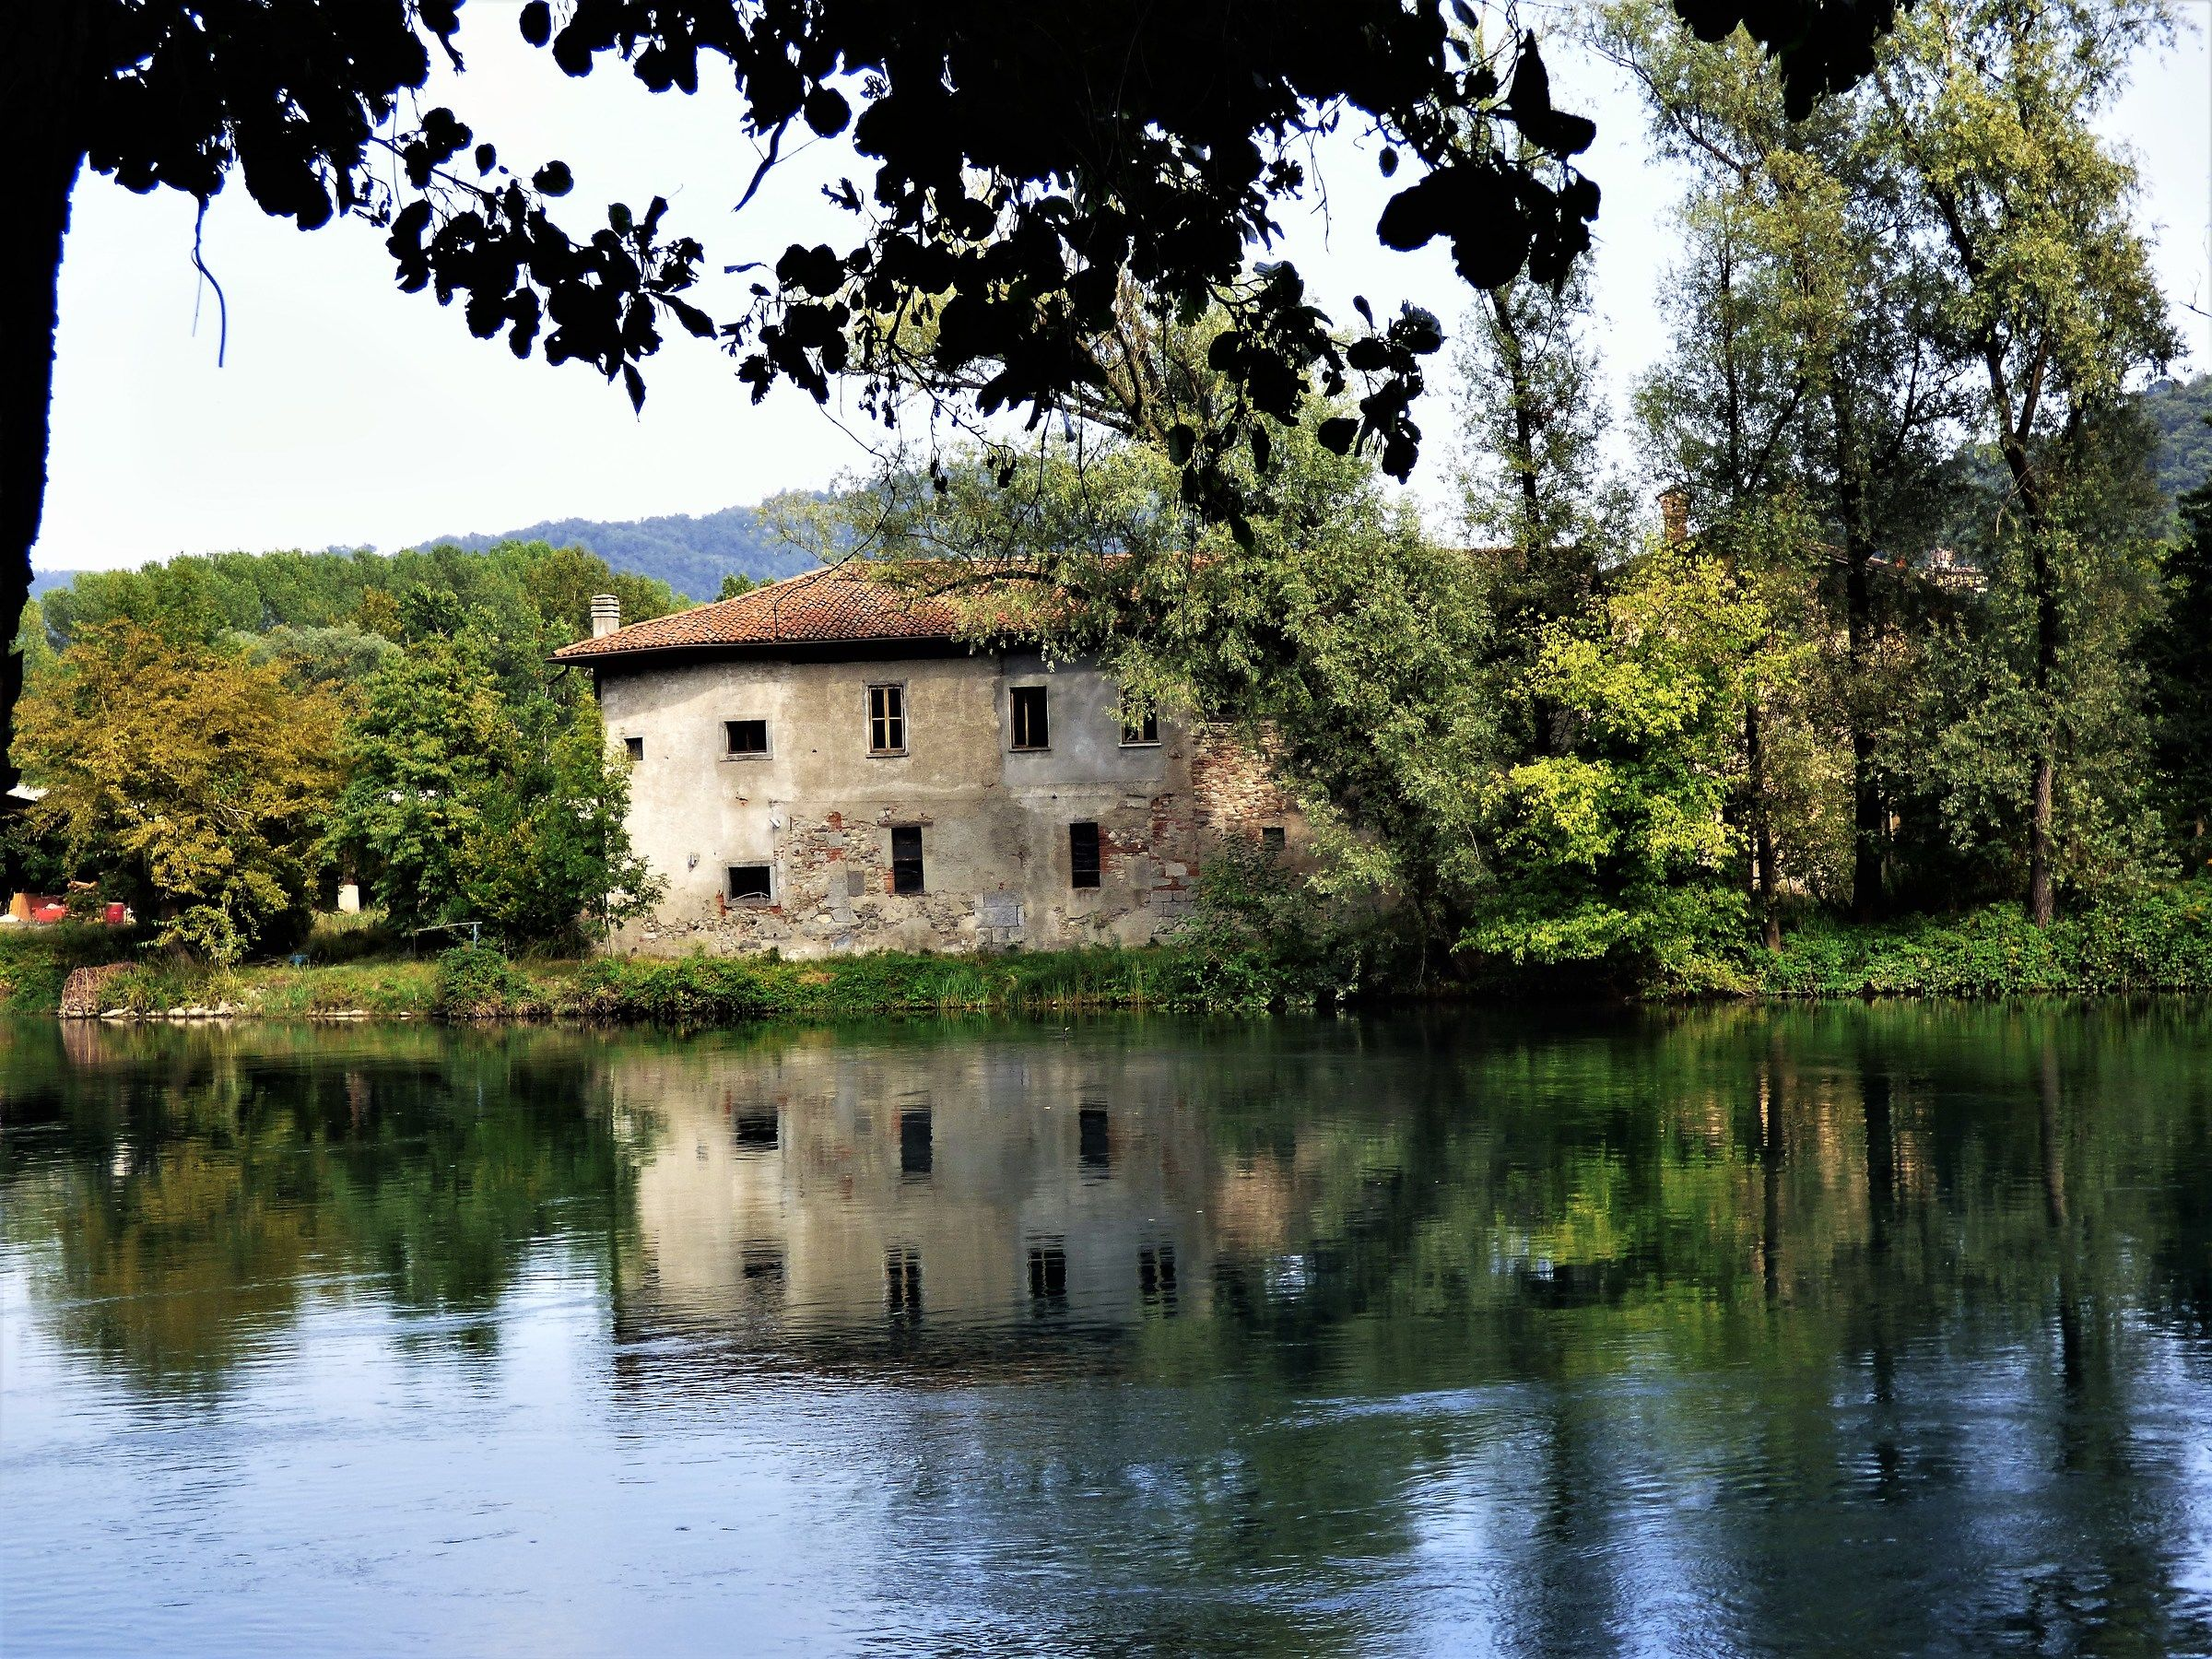 The old house on the river...